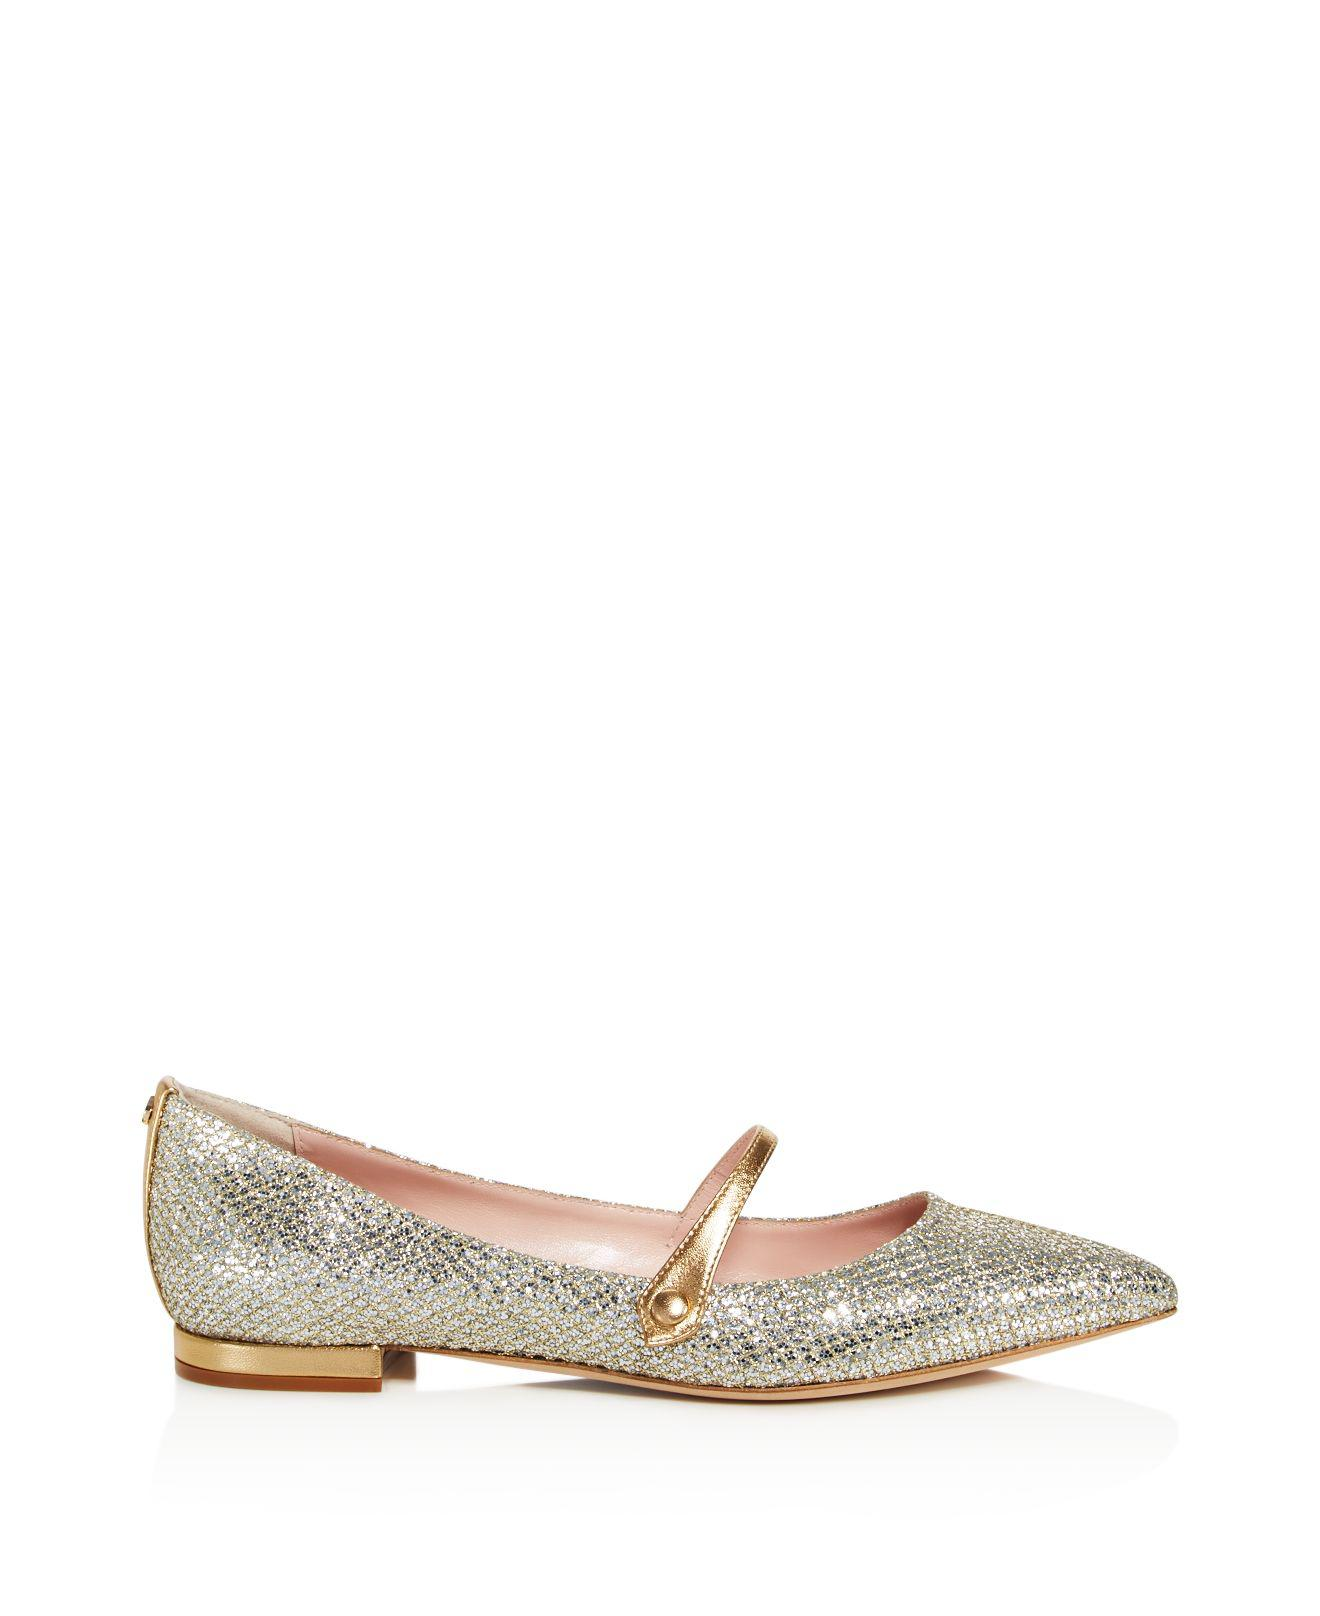 Lyst Kate Spade Bardot Pointed Toe Mary Jane Flats In